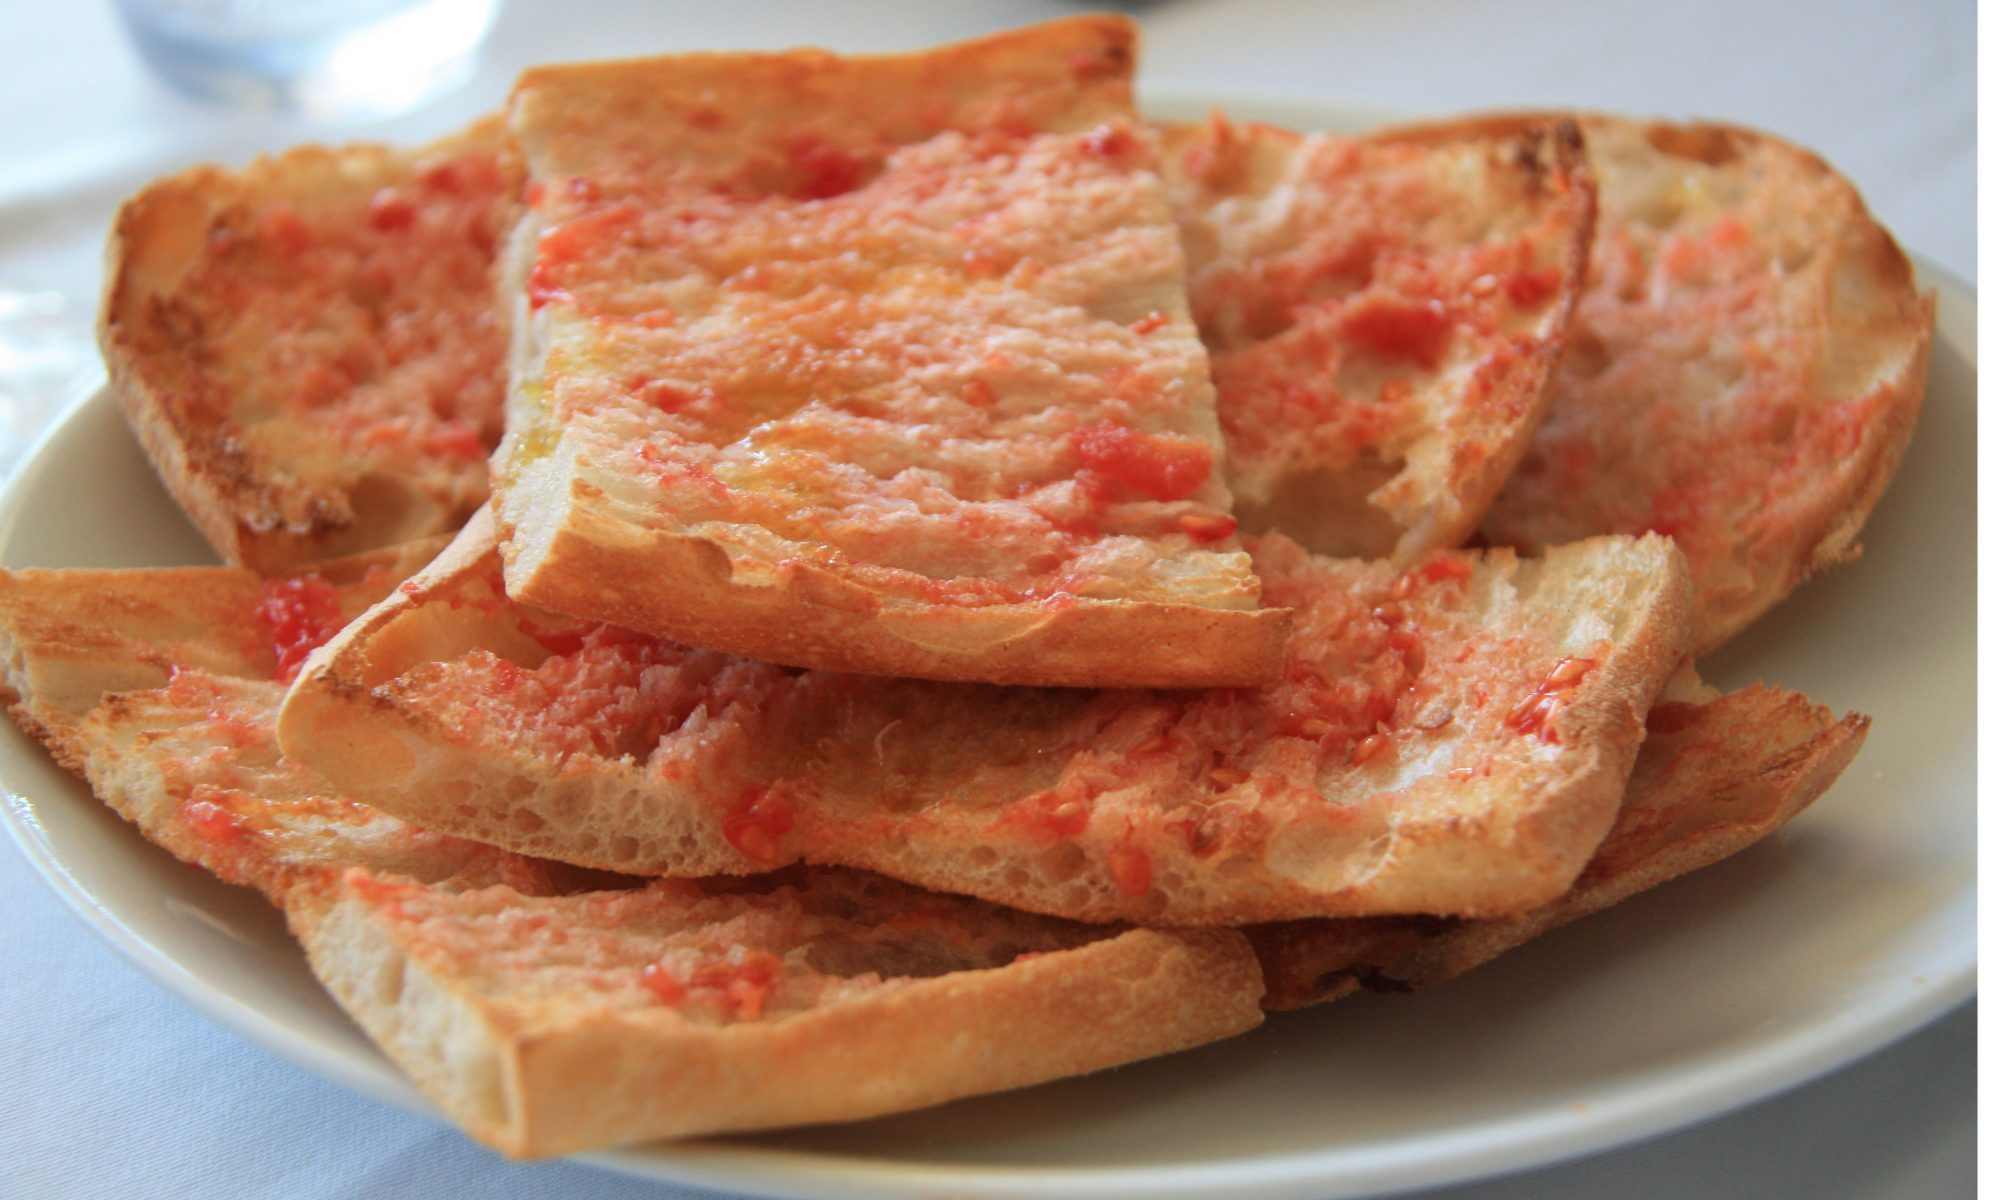 EC: The Four-Ingredient Spanish Breakfast That Changed My Life